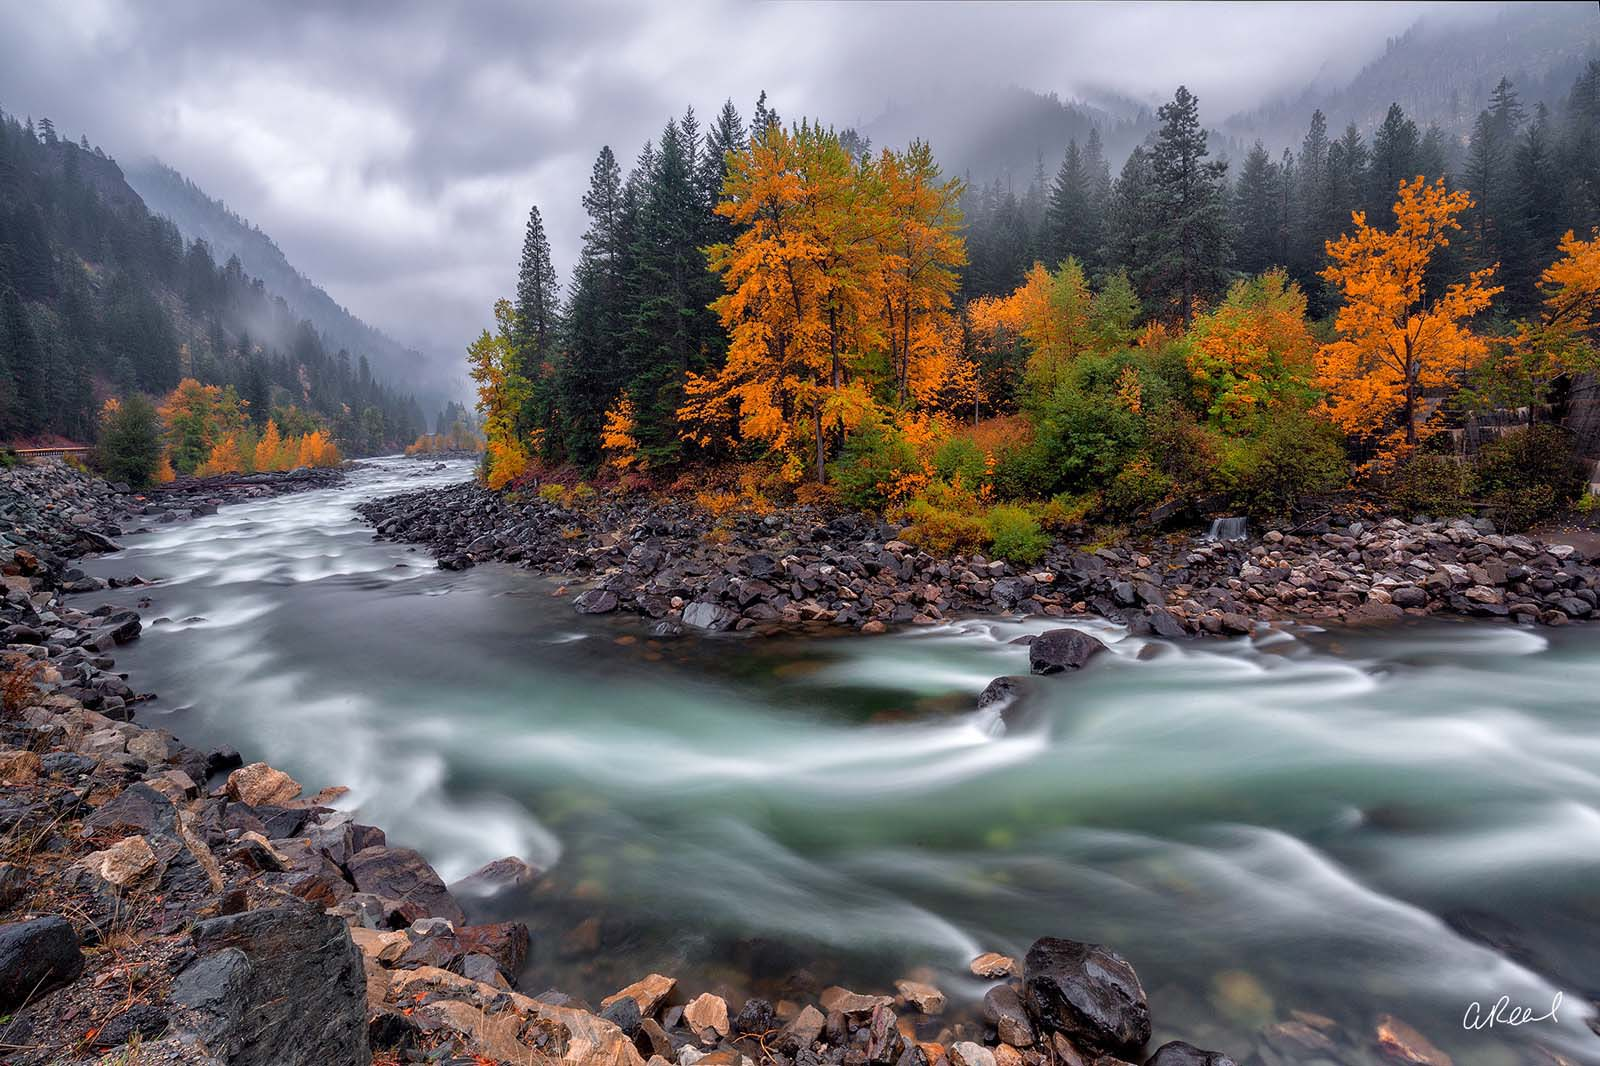 The Wash | Oceans & Rivers Photography | Aaron Reed